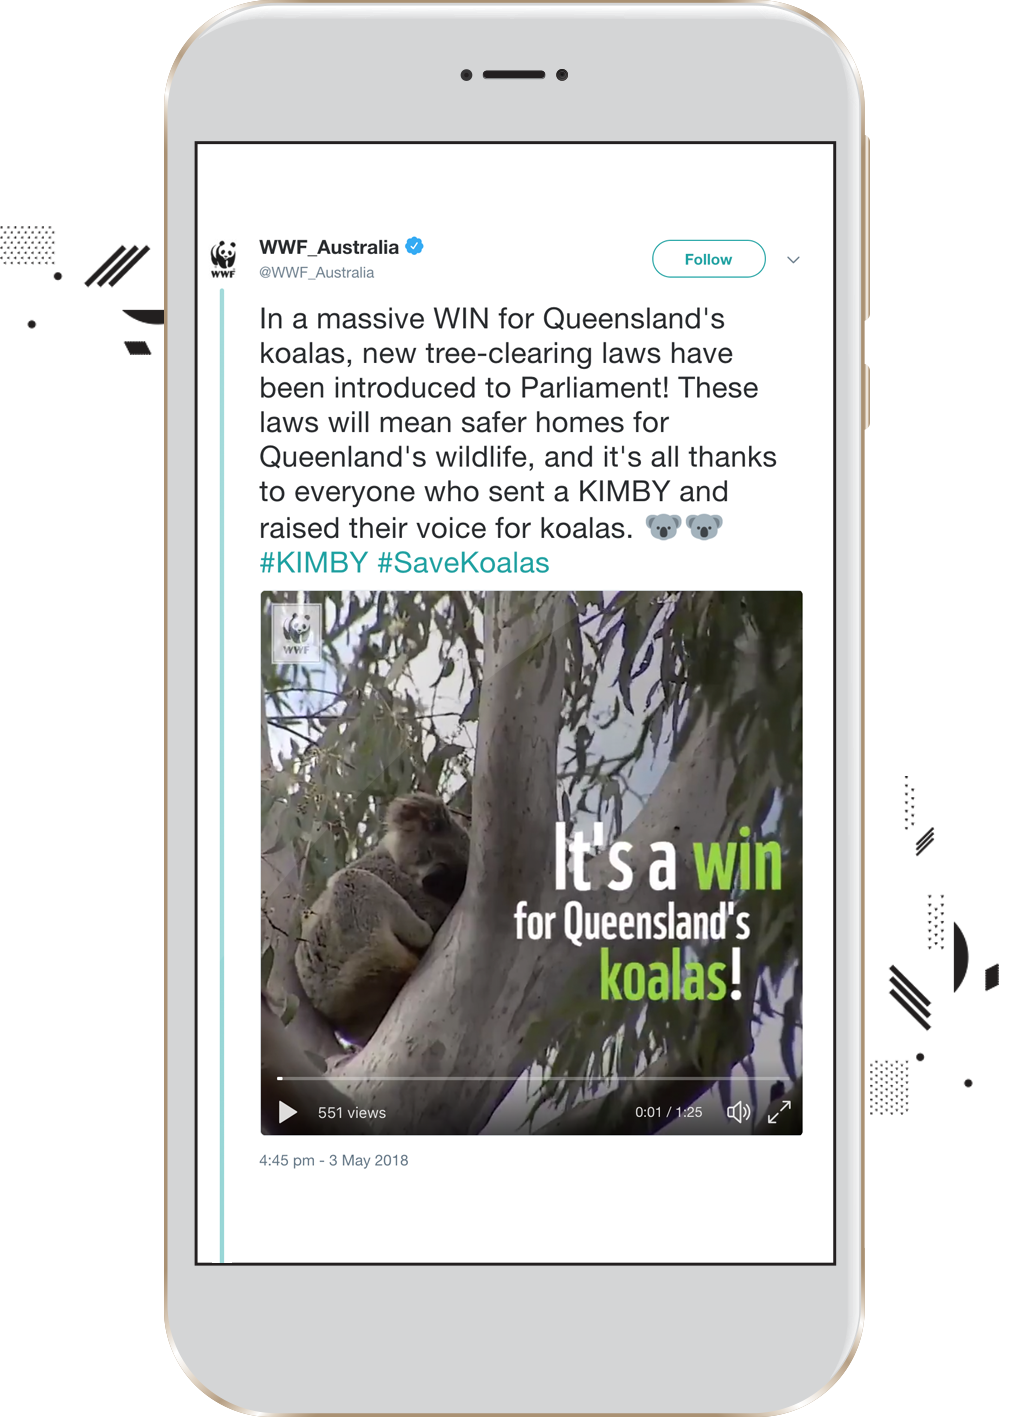 Our Campaign Resulted in Direct Change. New Tree-clearing Laws were Introduced to Safeguard Koalas -